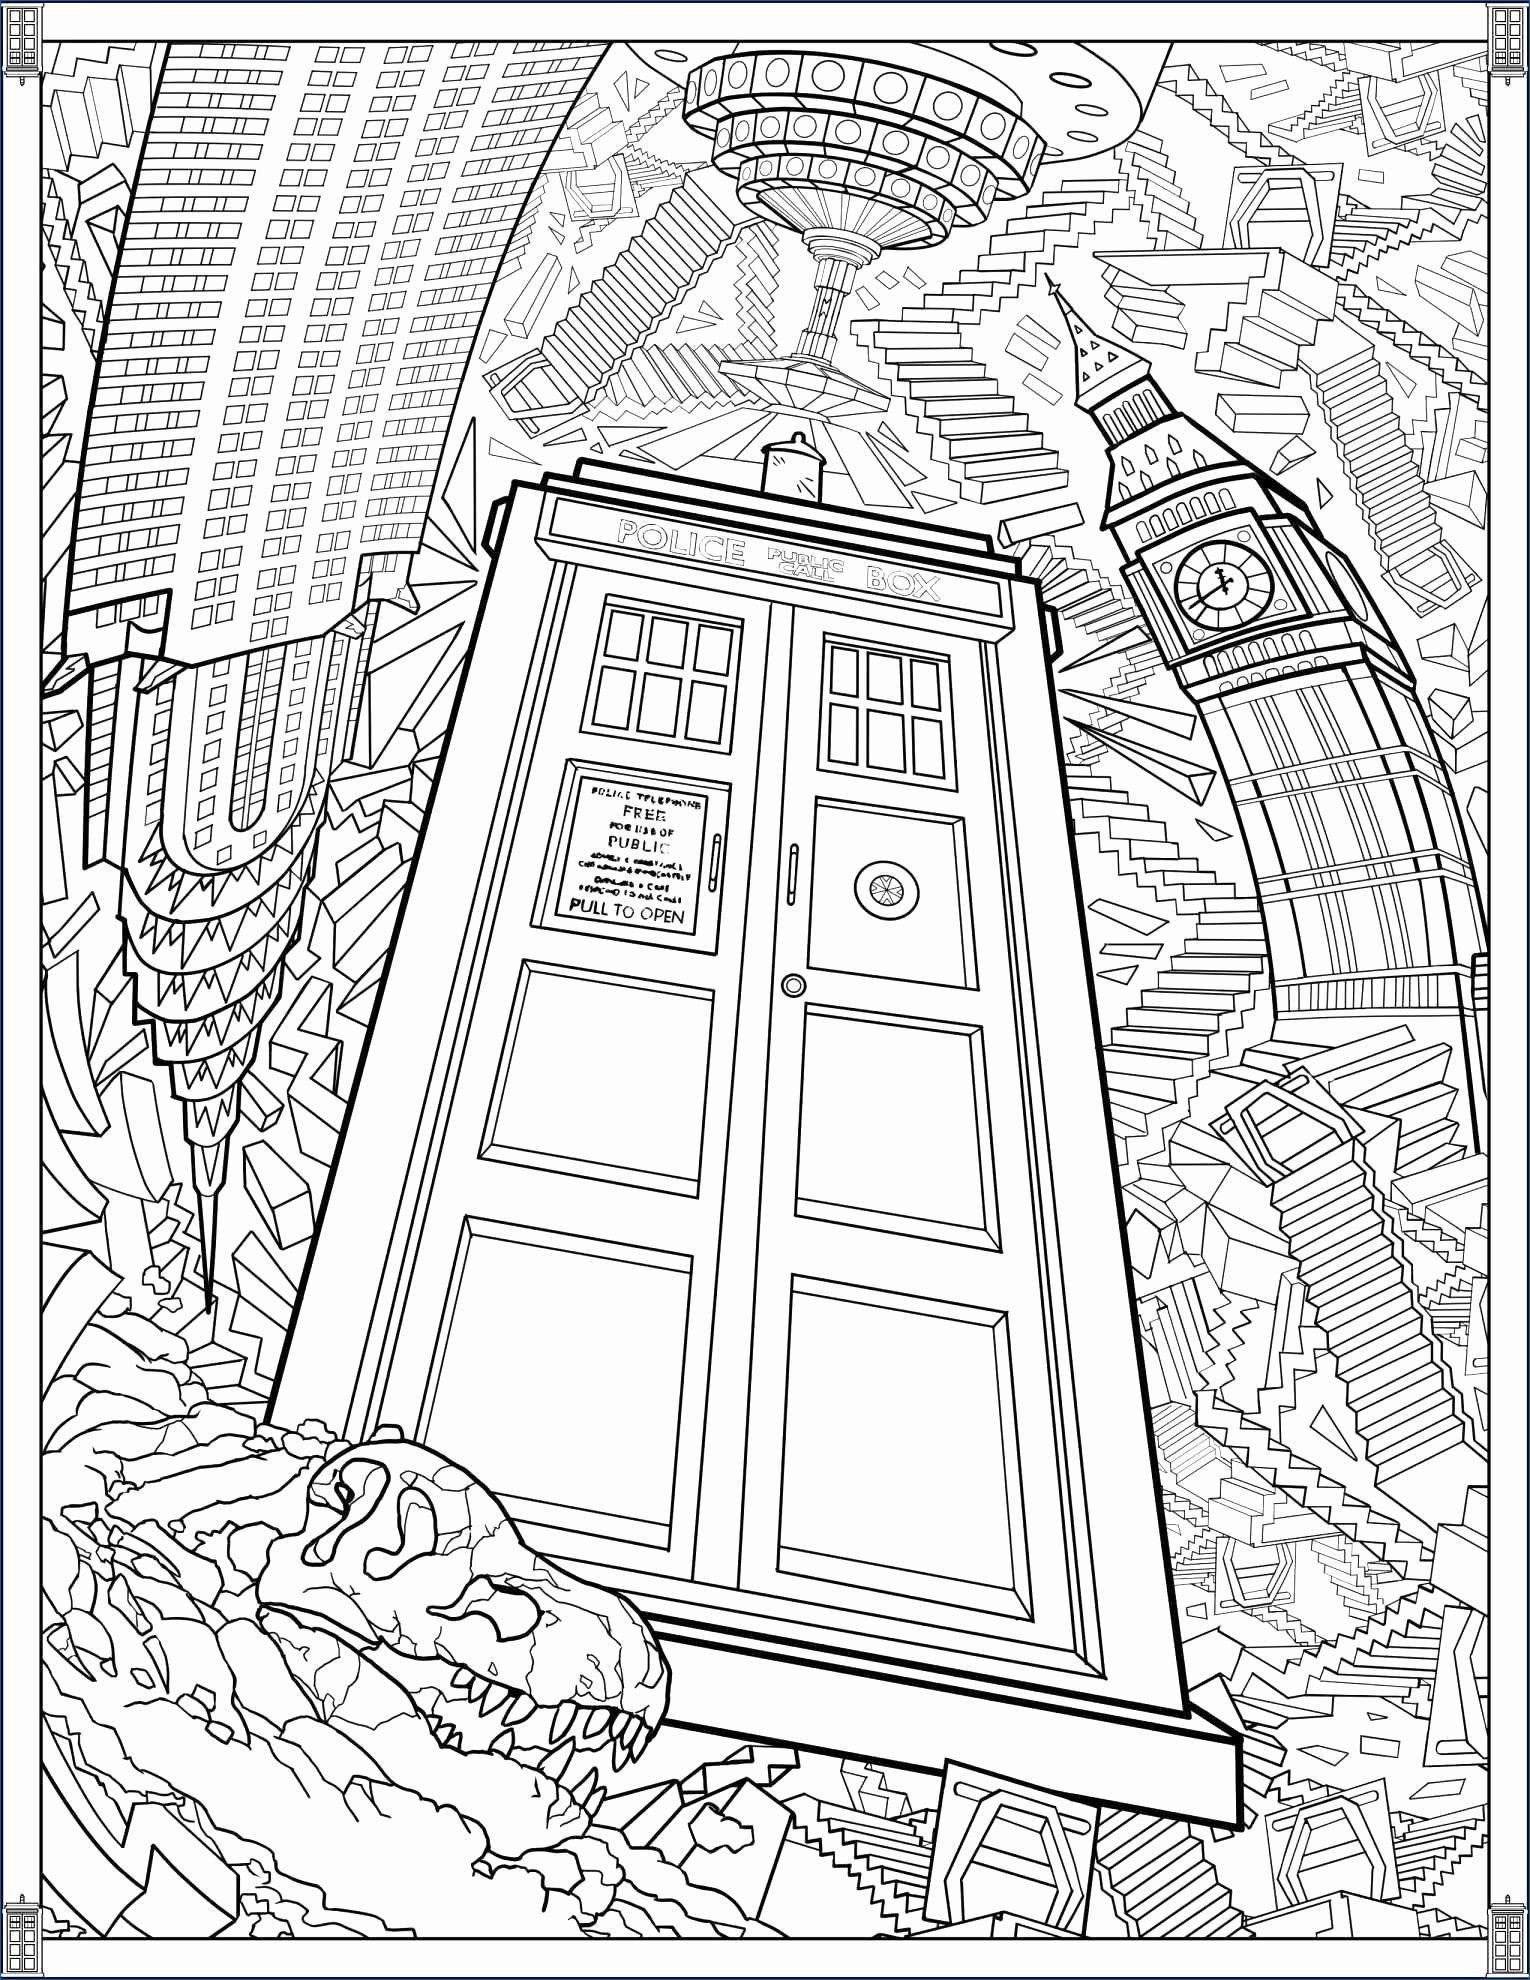 Addition Coloring Worksheets 2nd Grade 35 Remarkable First Grade Coloring Sheets Picture